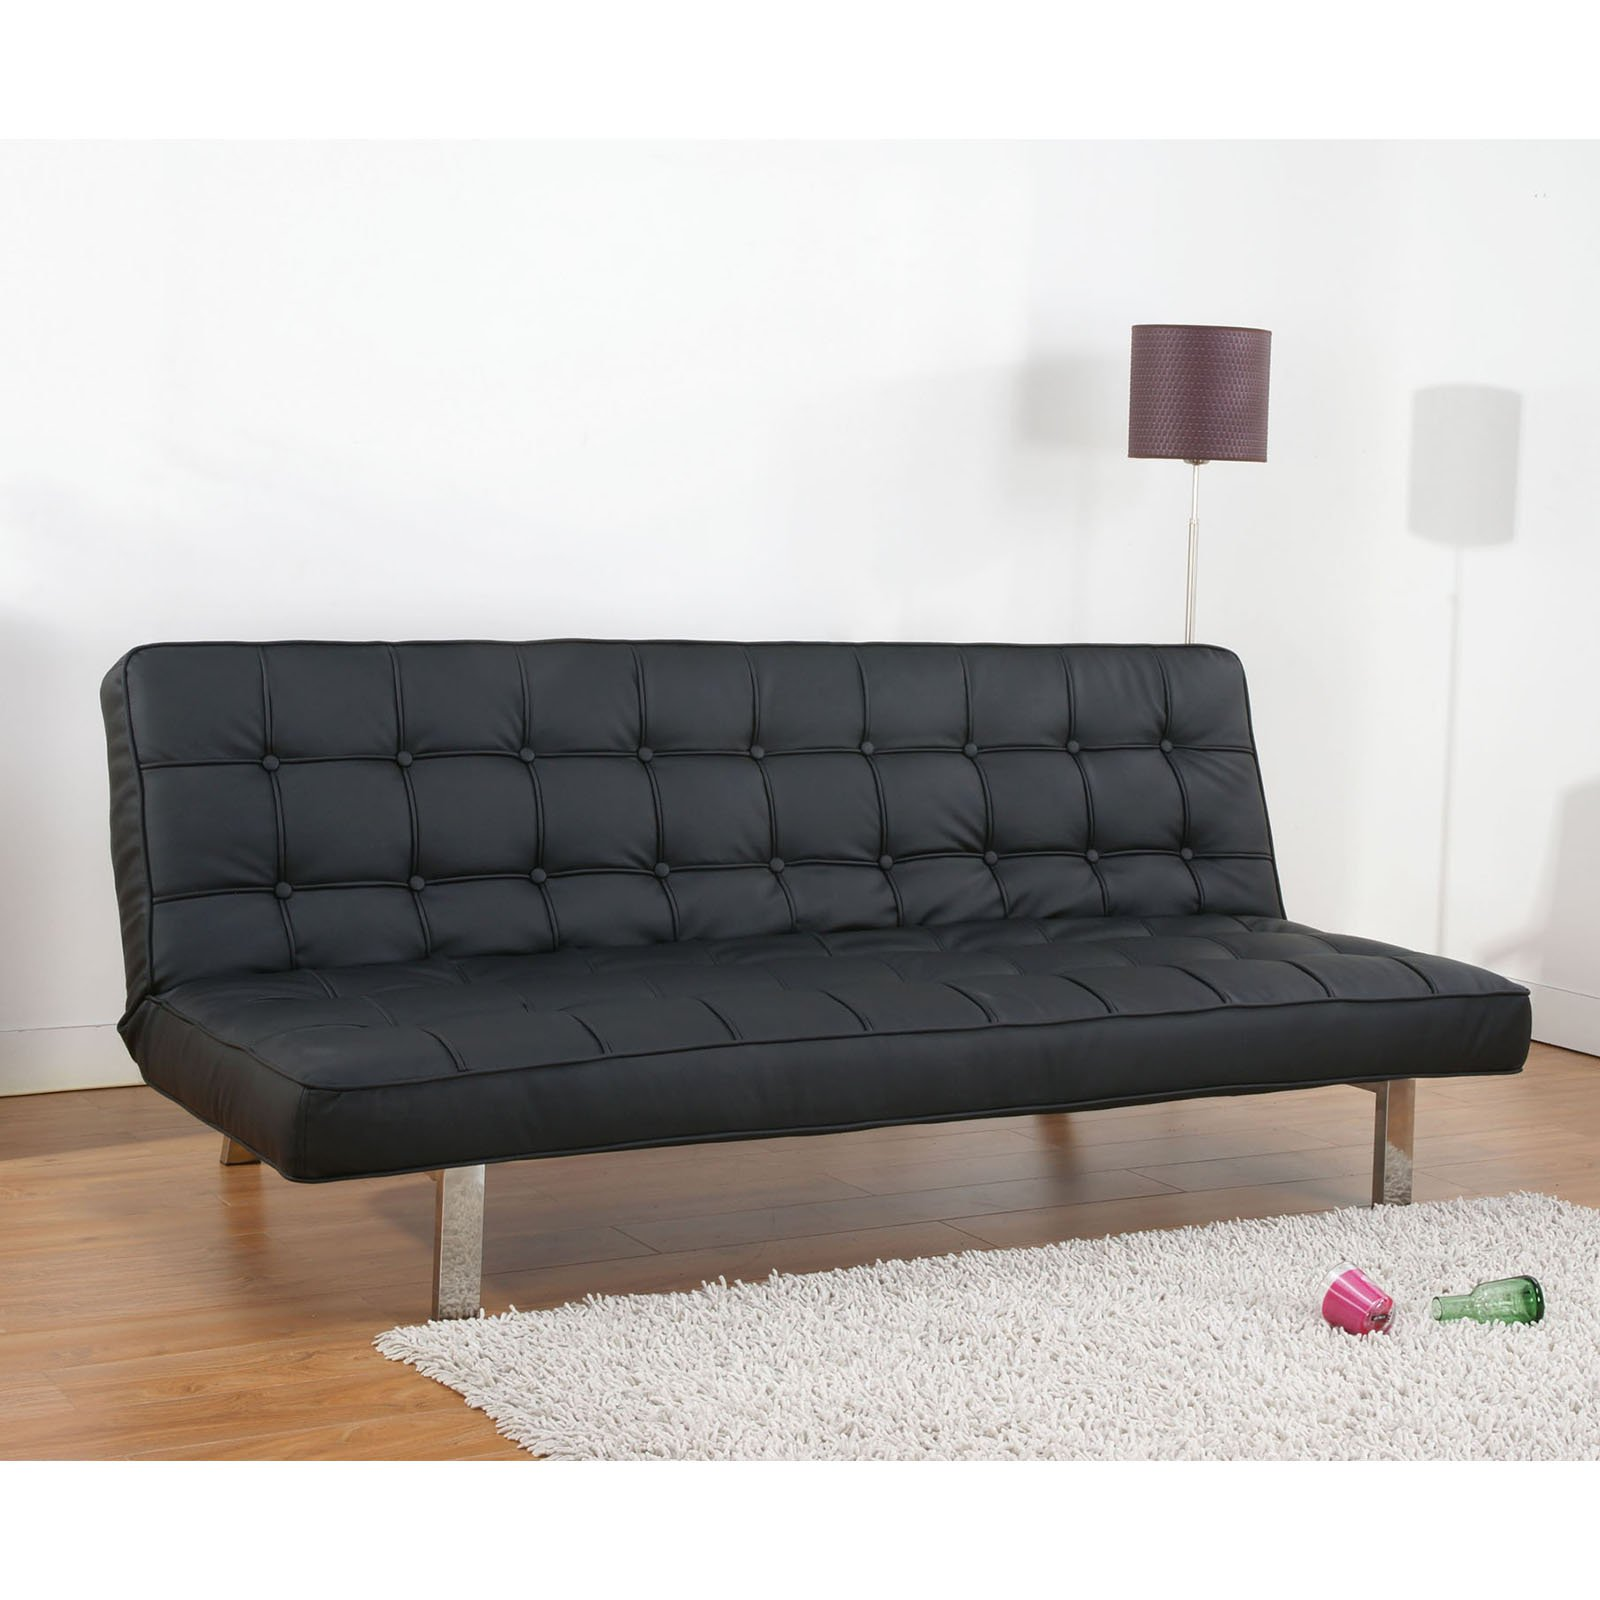 Gold Sparrow Vegas Convertible Futon Sofa